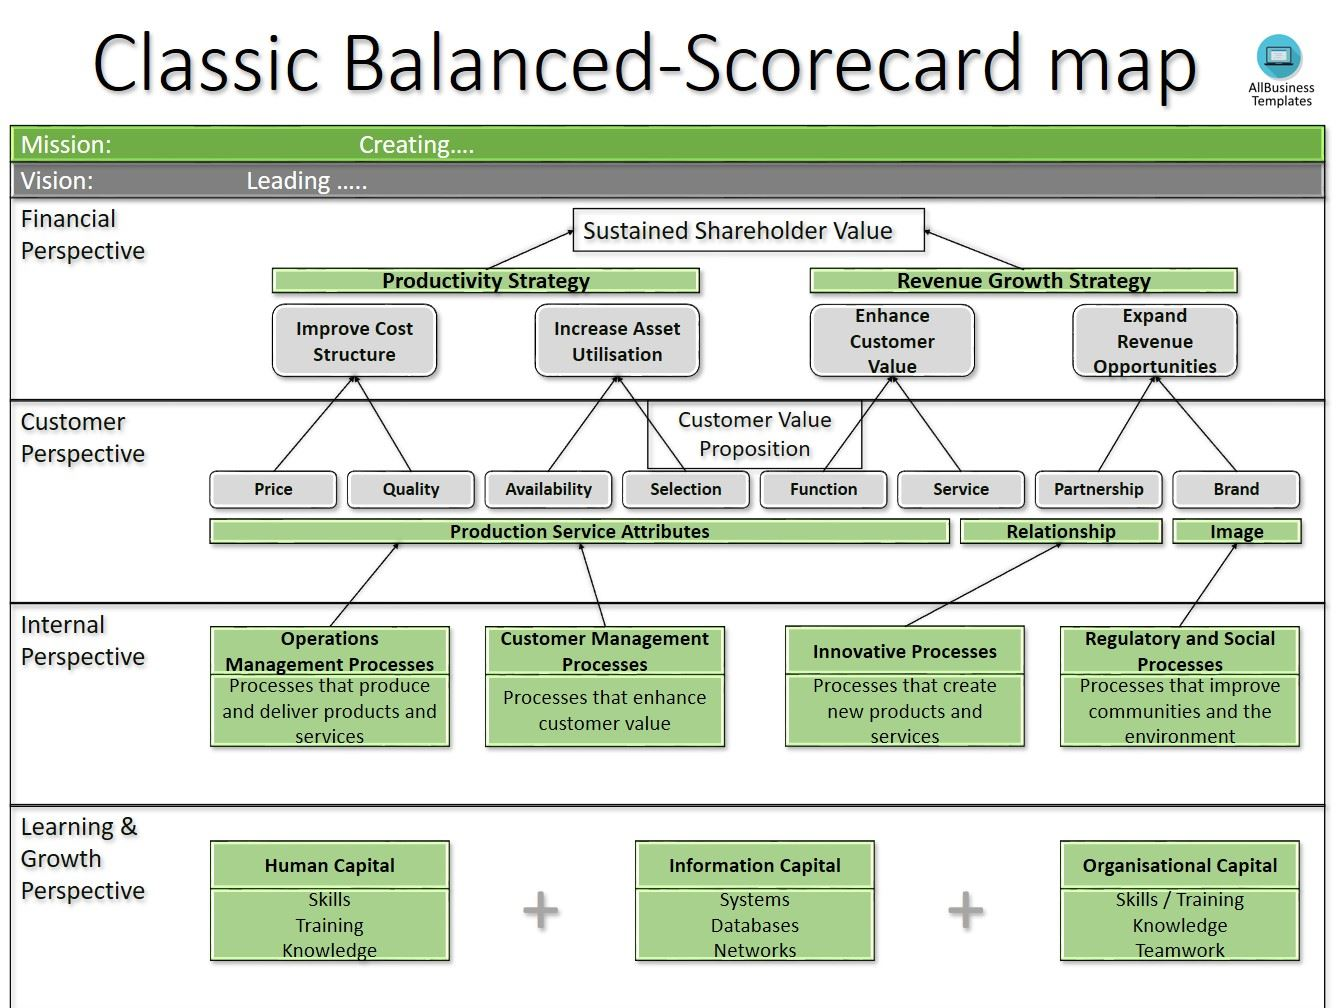 Business balanced scorecard template templates at business balanced scorecard template main image accmission Image collections